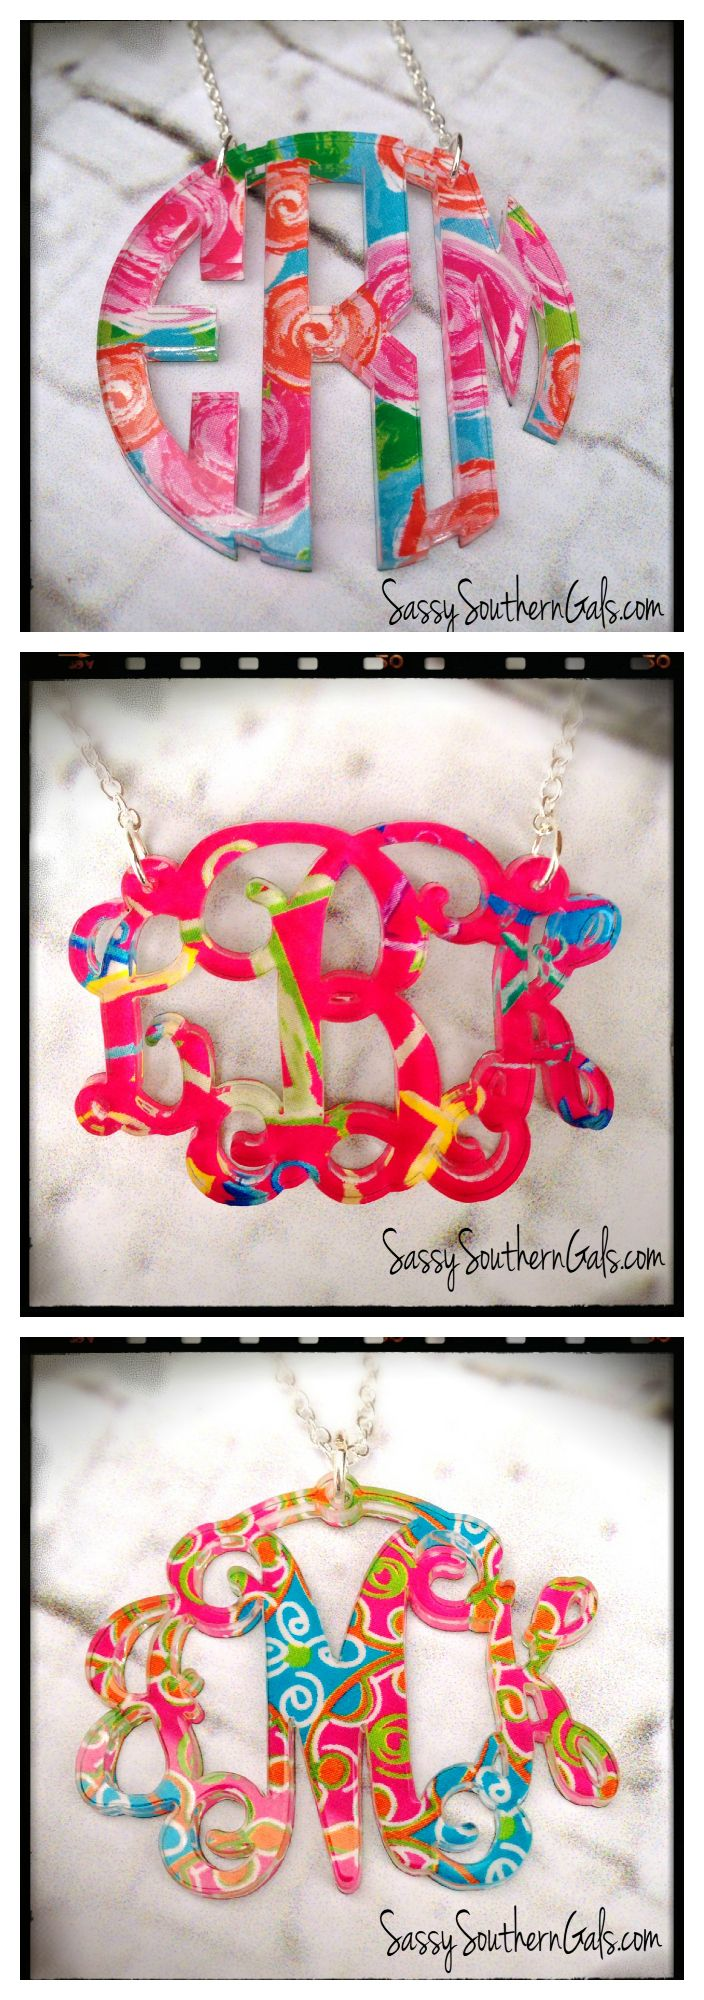 Lilly Pulitzer inspired monogrammed necklace, acrylic monogram necklace on www.SassySouthernGals.com